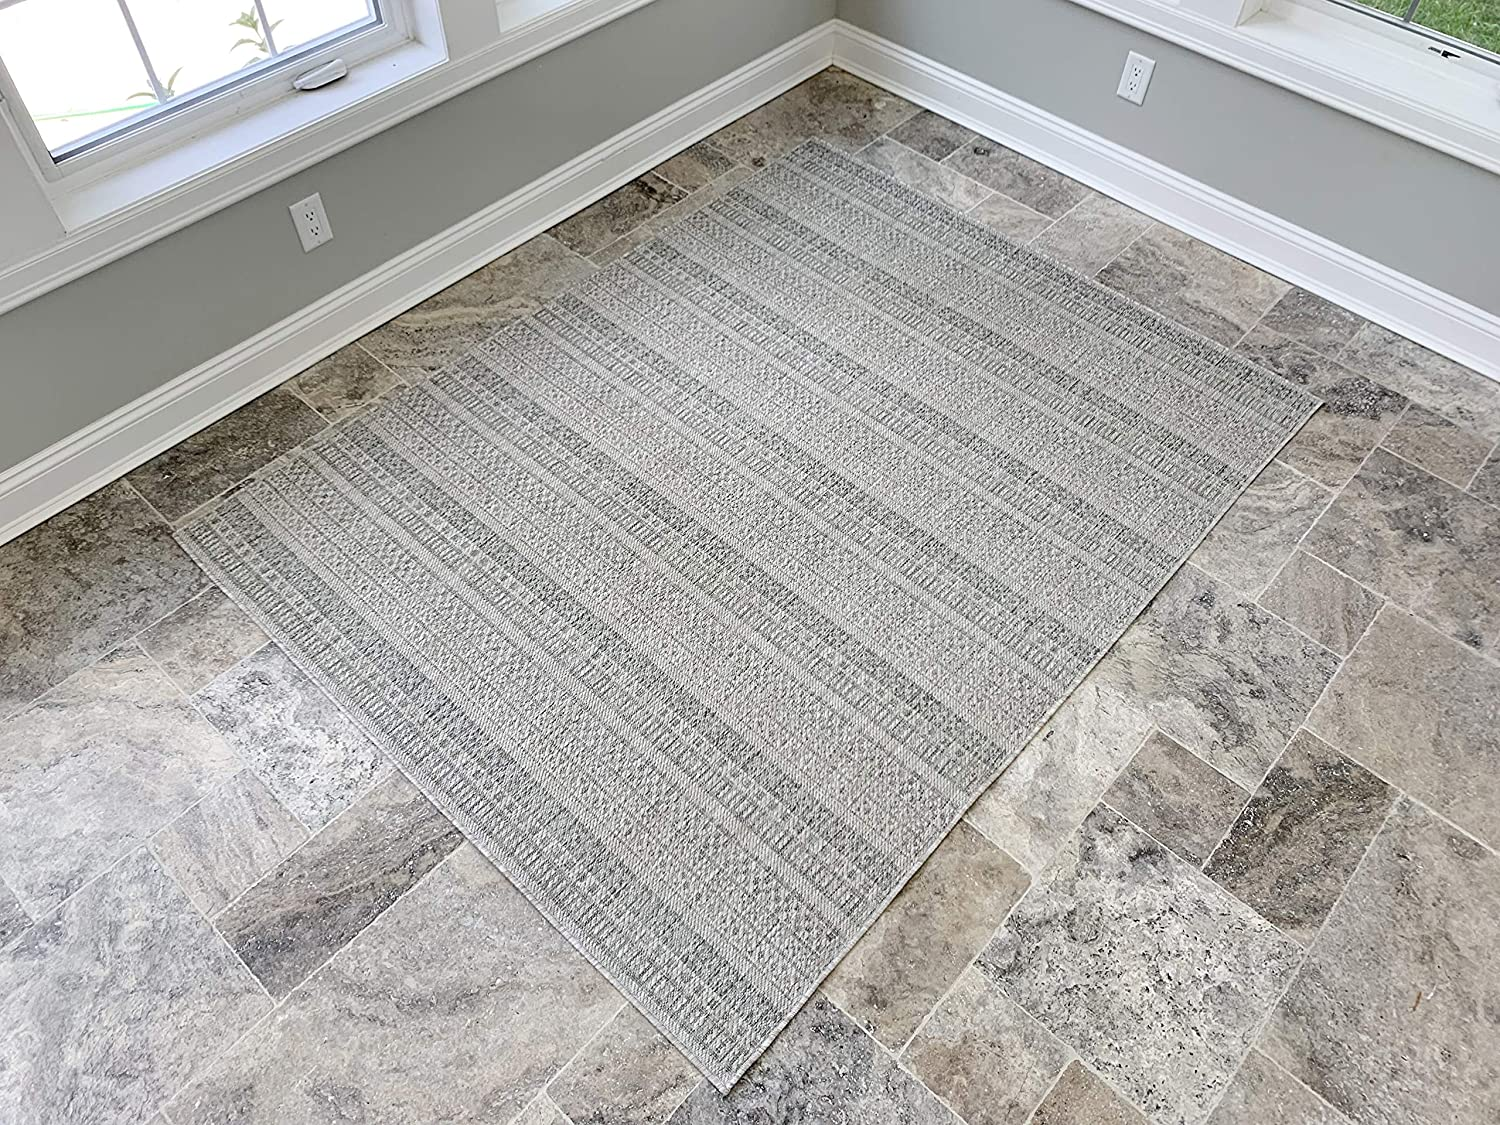 Benissimo Indoor Outdoor Rug Stripes Collection Non-Skid, Natural Sisal Woven and Jute Backing Area Carpet for Living Room, Bedroom, Kitchen, Entryway, Hallway, Patio, Farmhouse Decor, 4x6, Beige